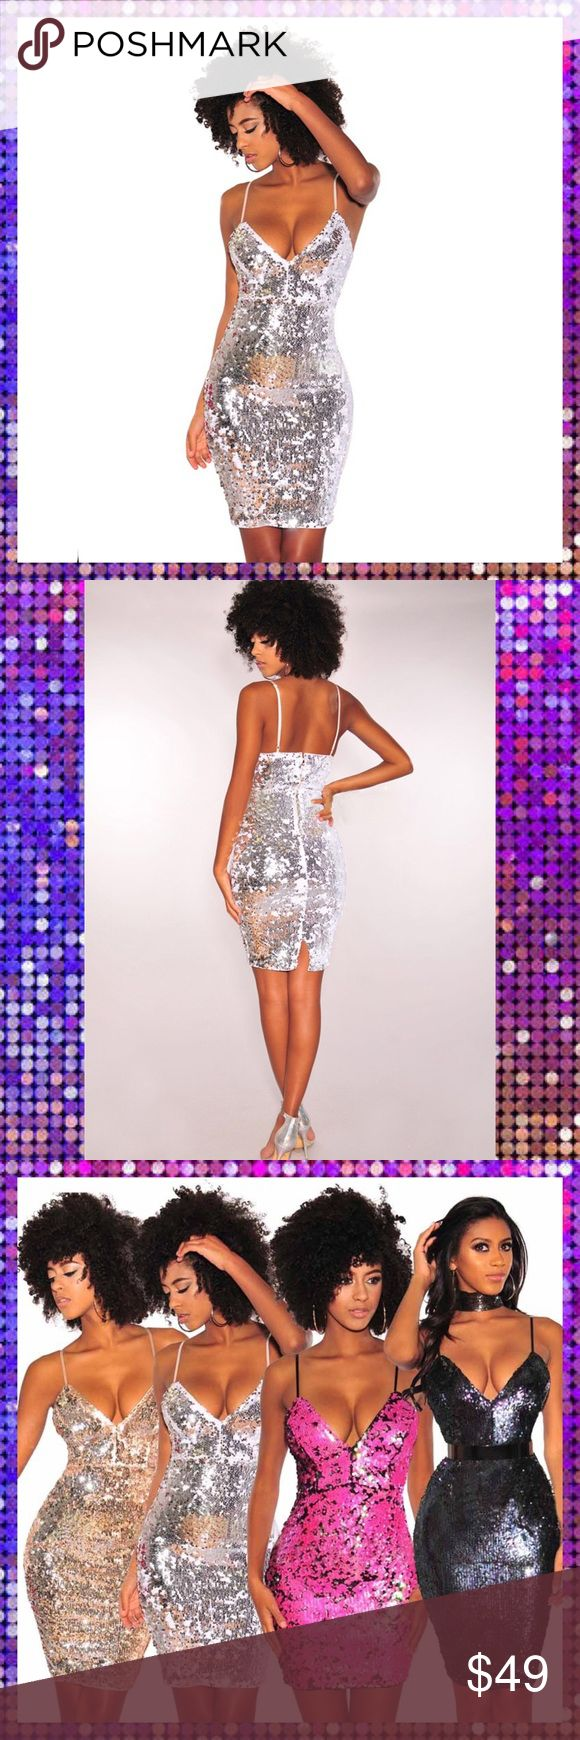 Stunning Silver Bodycon Party Dress Gorgeous silver Sequin Bodycon Dress  Size: Small 2-4  Fits with an elastic stretch that hugs and accentuates your curves   Materials: Polyester and spandex Dresses Mini